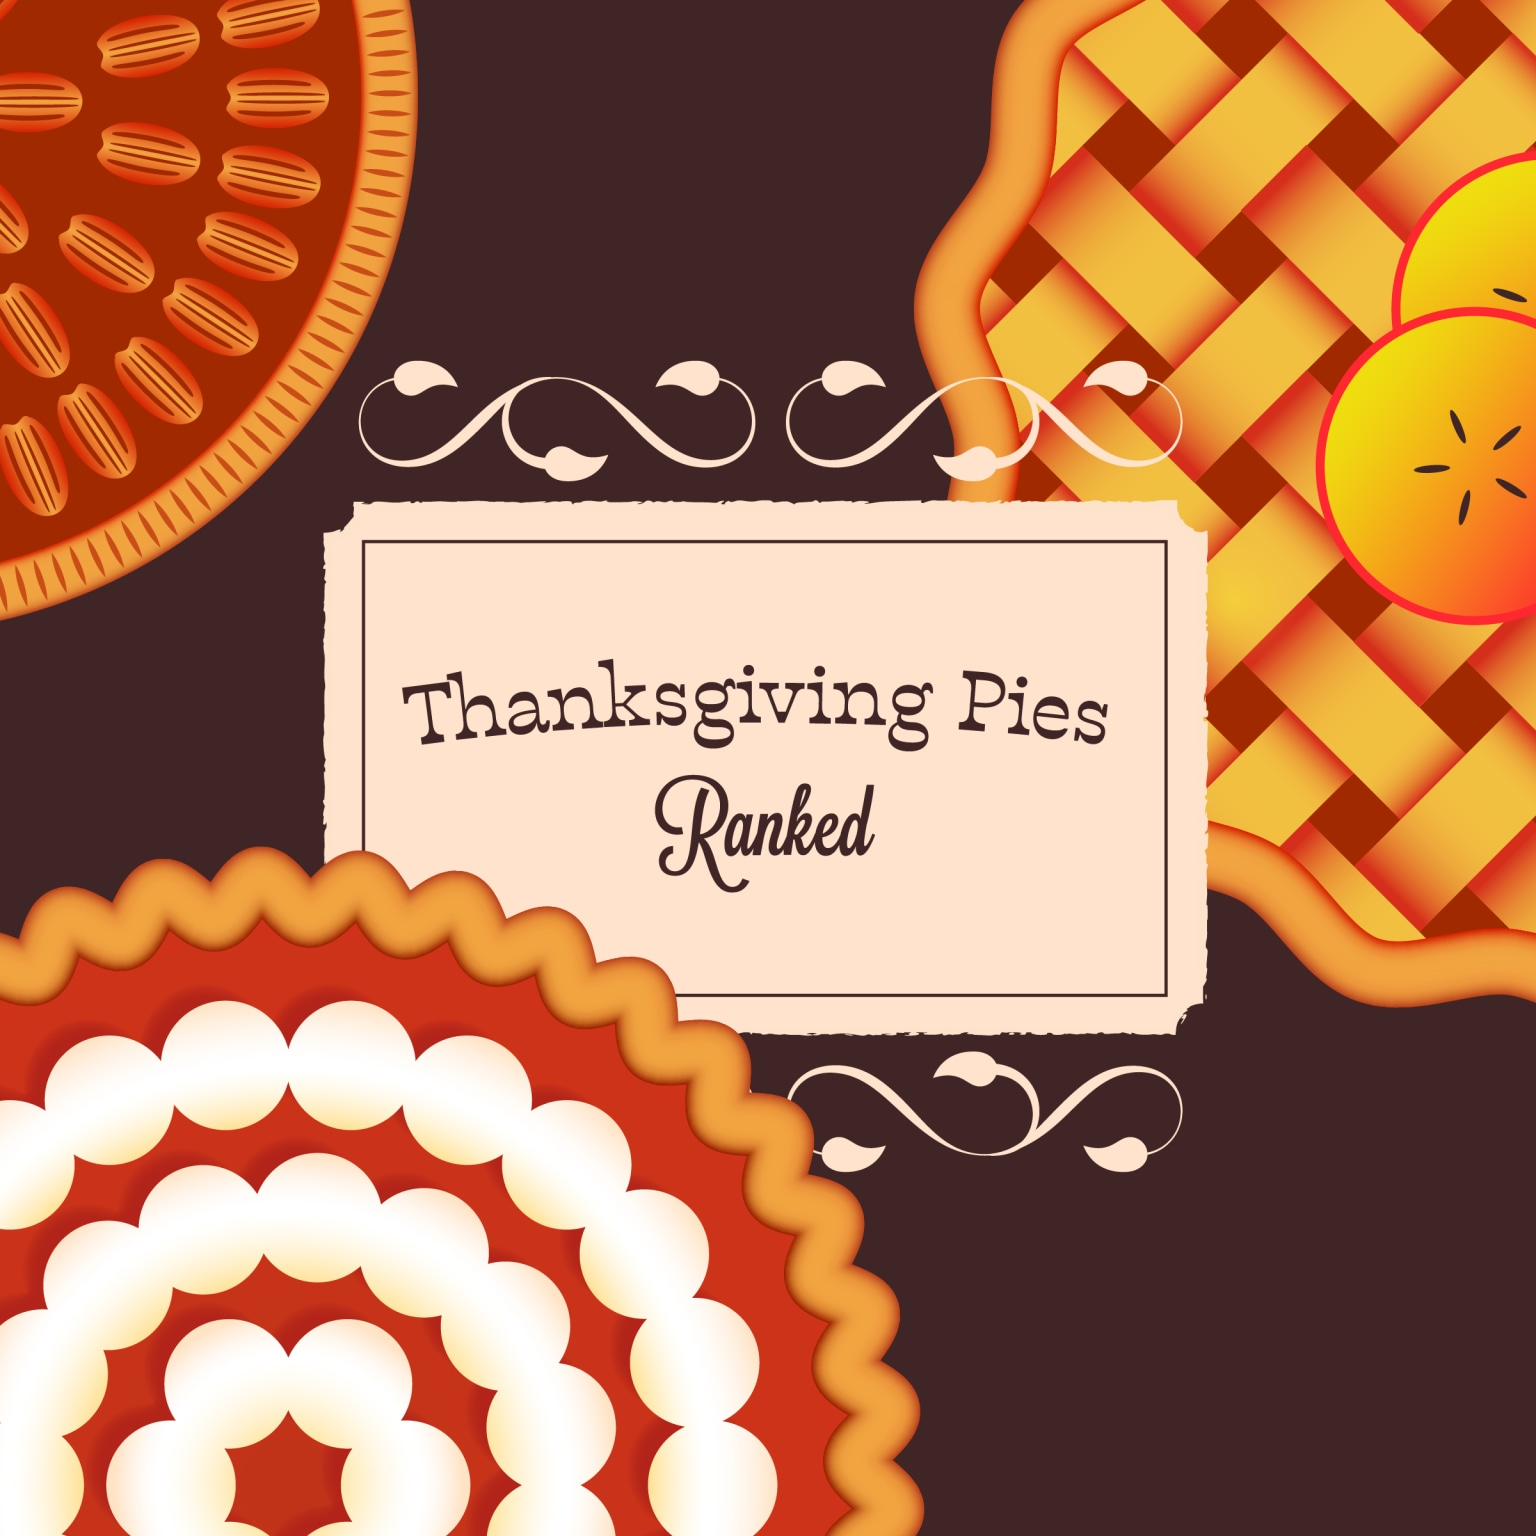 Thanksgiving Pies Ranked